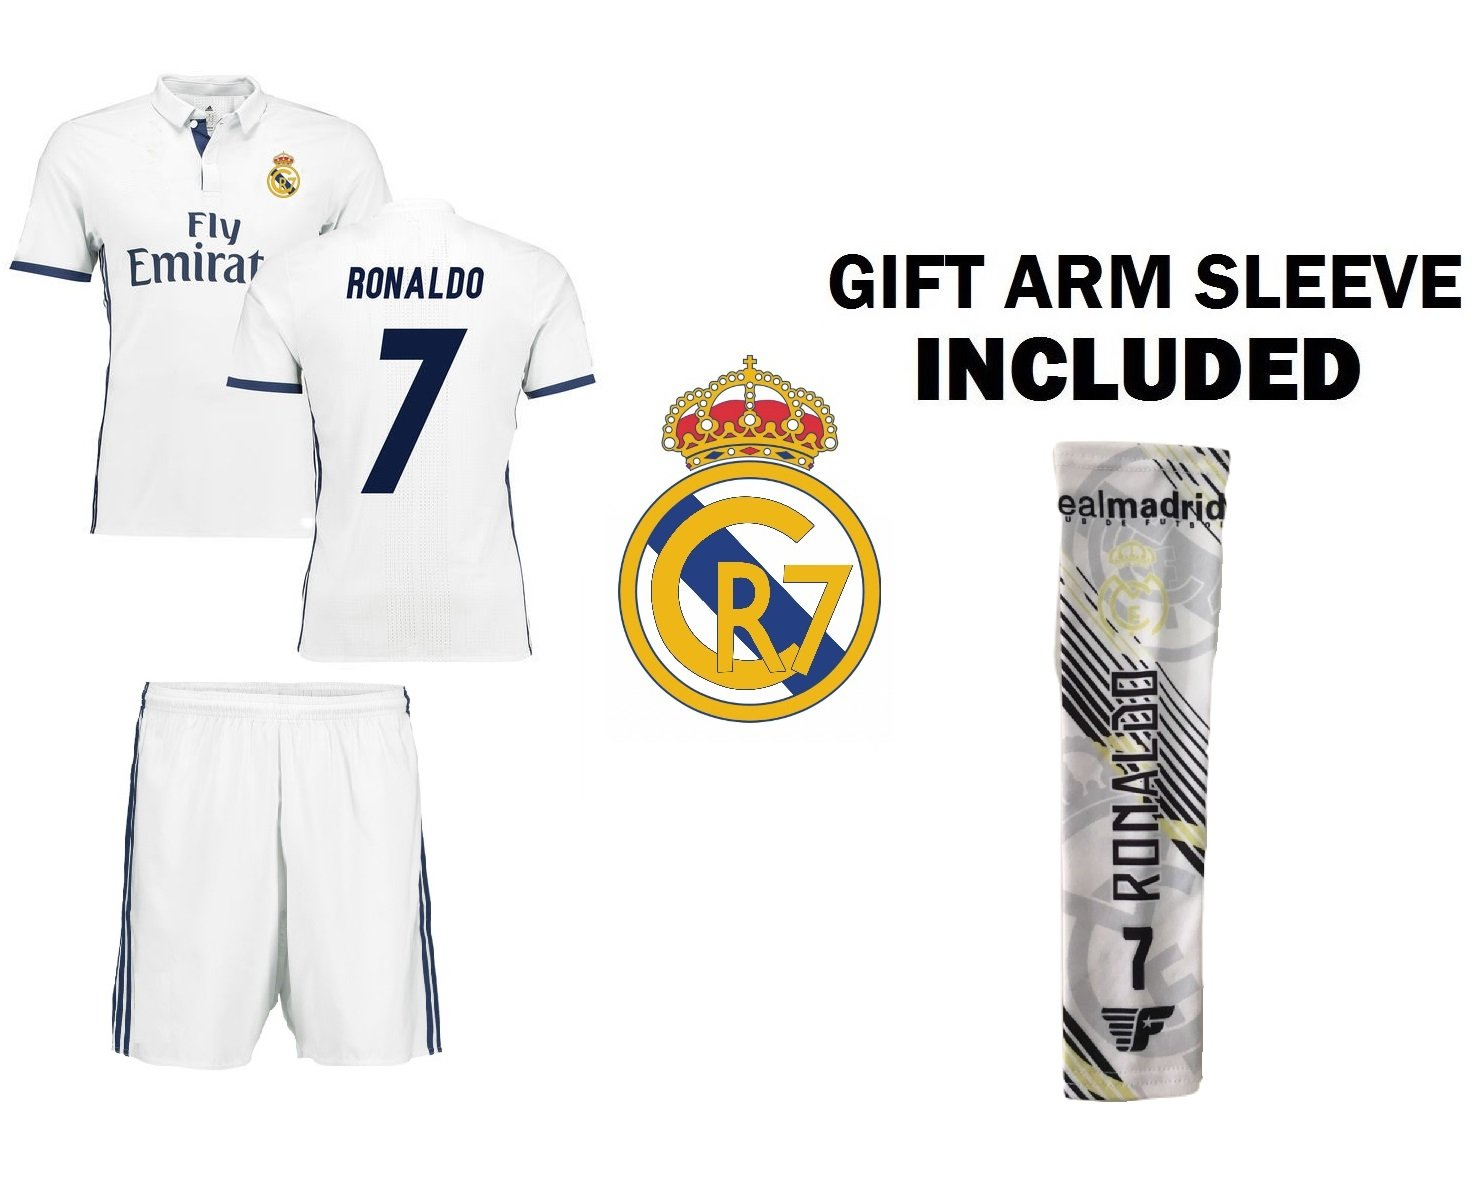 CR7 Christiano Ronaldo Kids Soccer Jersey Set - Ronaldo  7 Youth Jersey  Shirt + Shorts + CR7 Bag   Ultimate Fan Gift Set for Boys   Girls (Youth  Large 10 to ... 56302a471